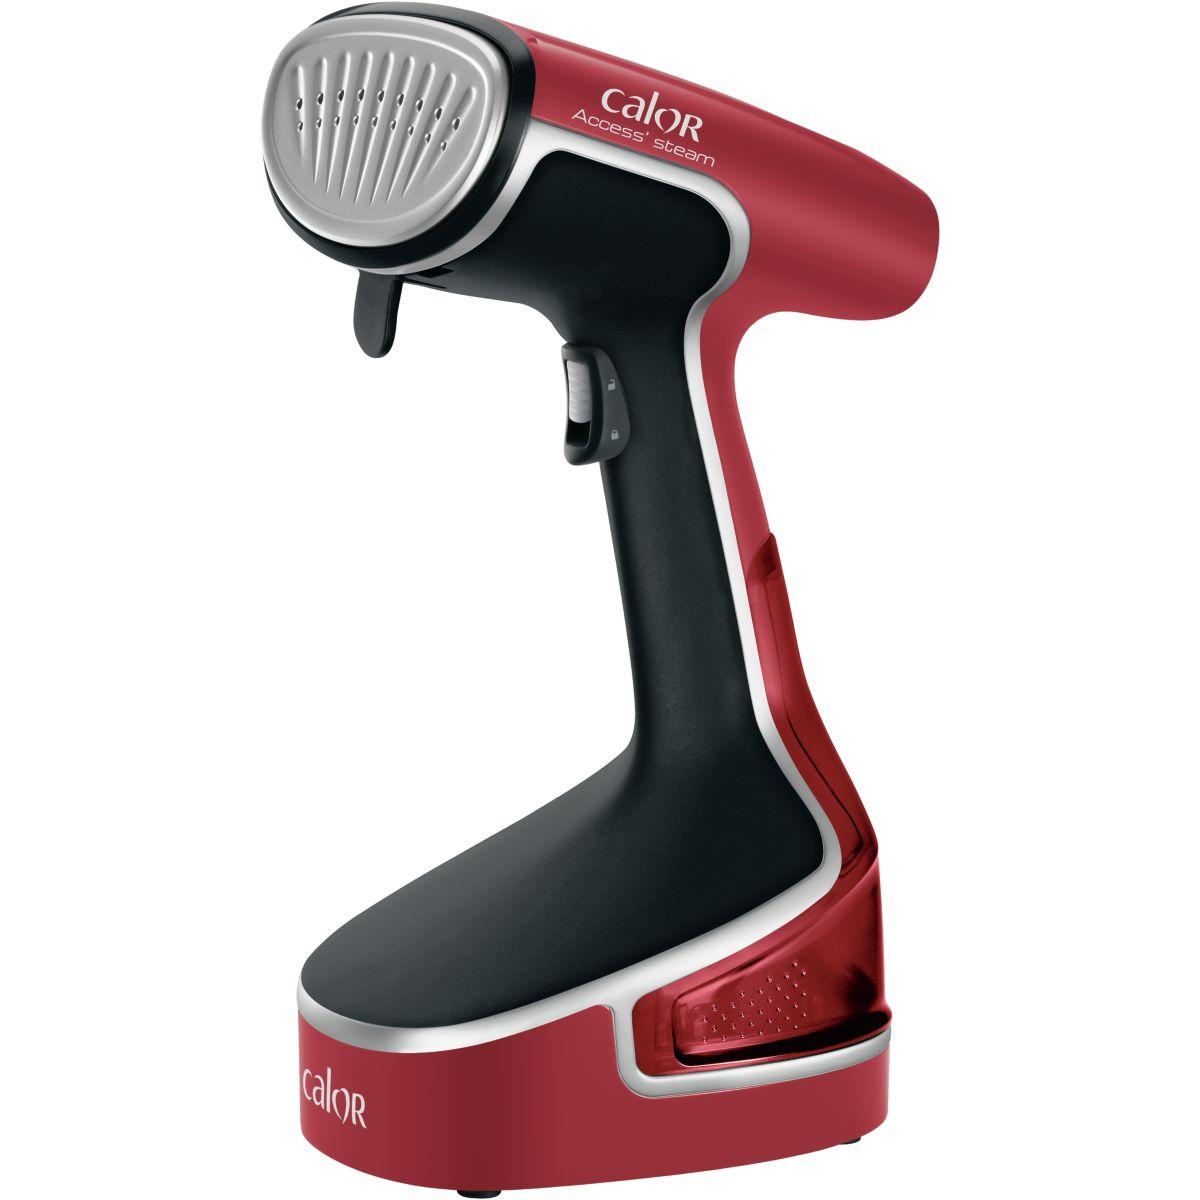 Défroisseur calor dr8088co access steam - 15% de remise : code pam15 (photo)